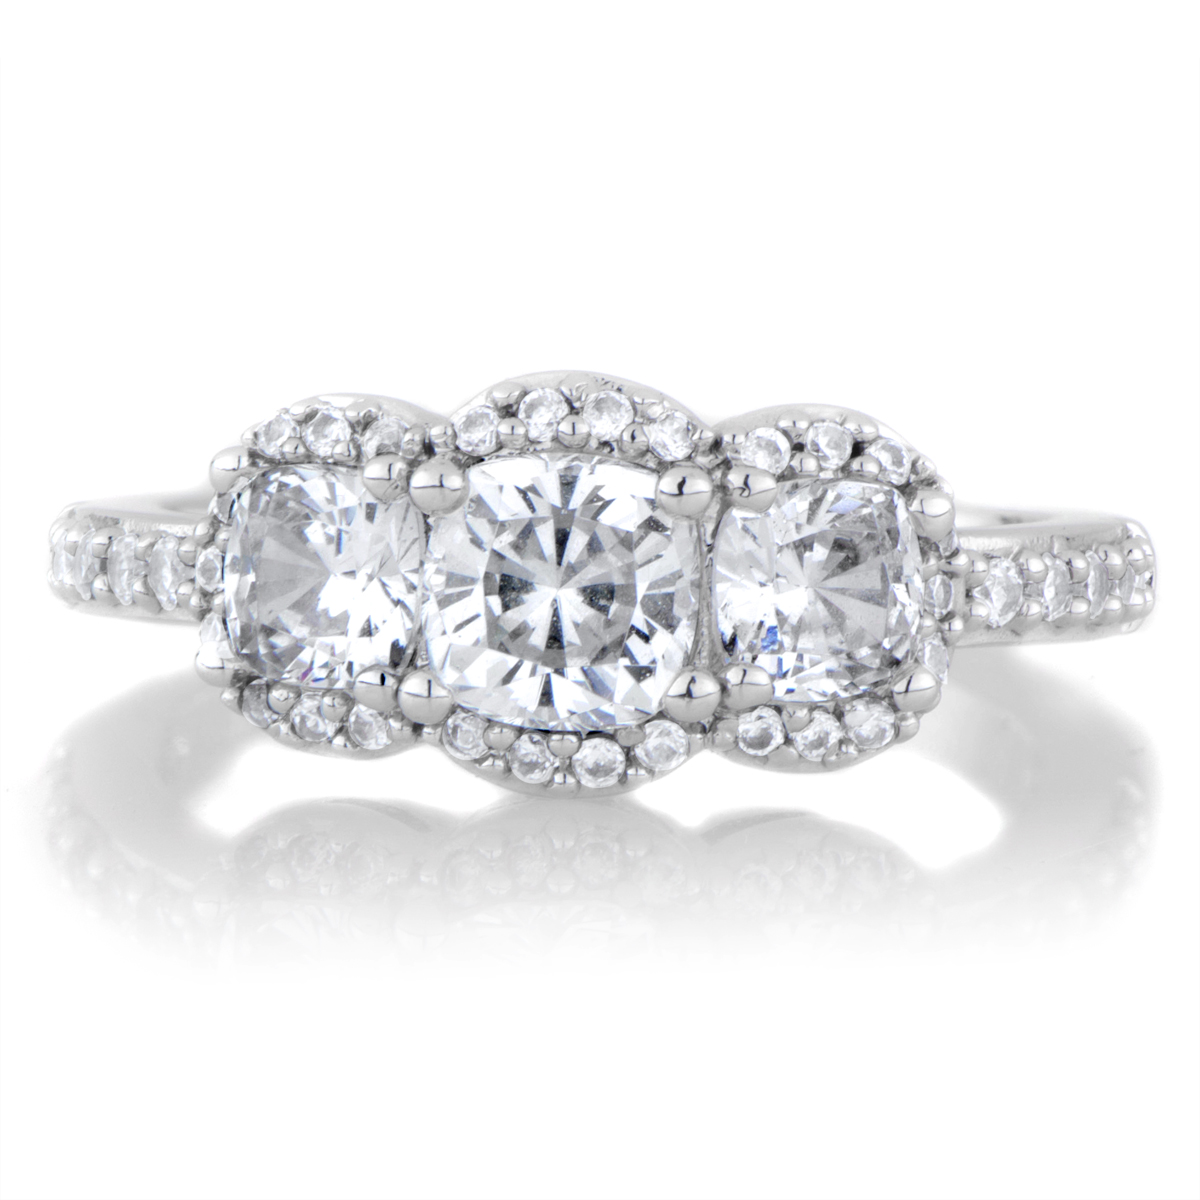 abigails cushion cut 3 stone engagement ring roll off image to close zoom window - Three Stone Wedding Rings